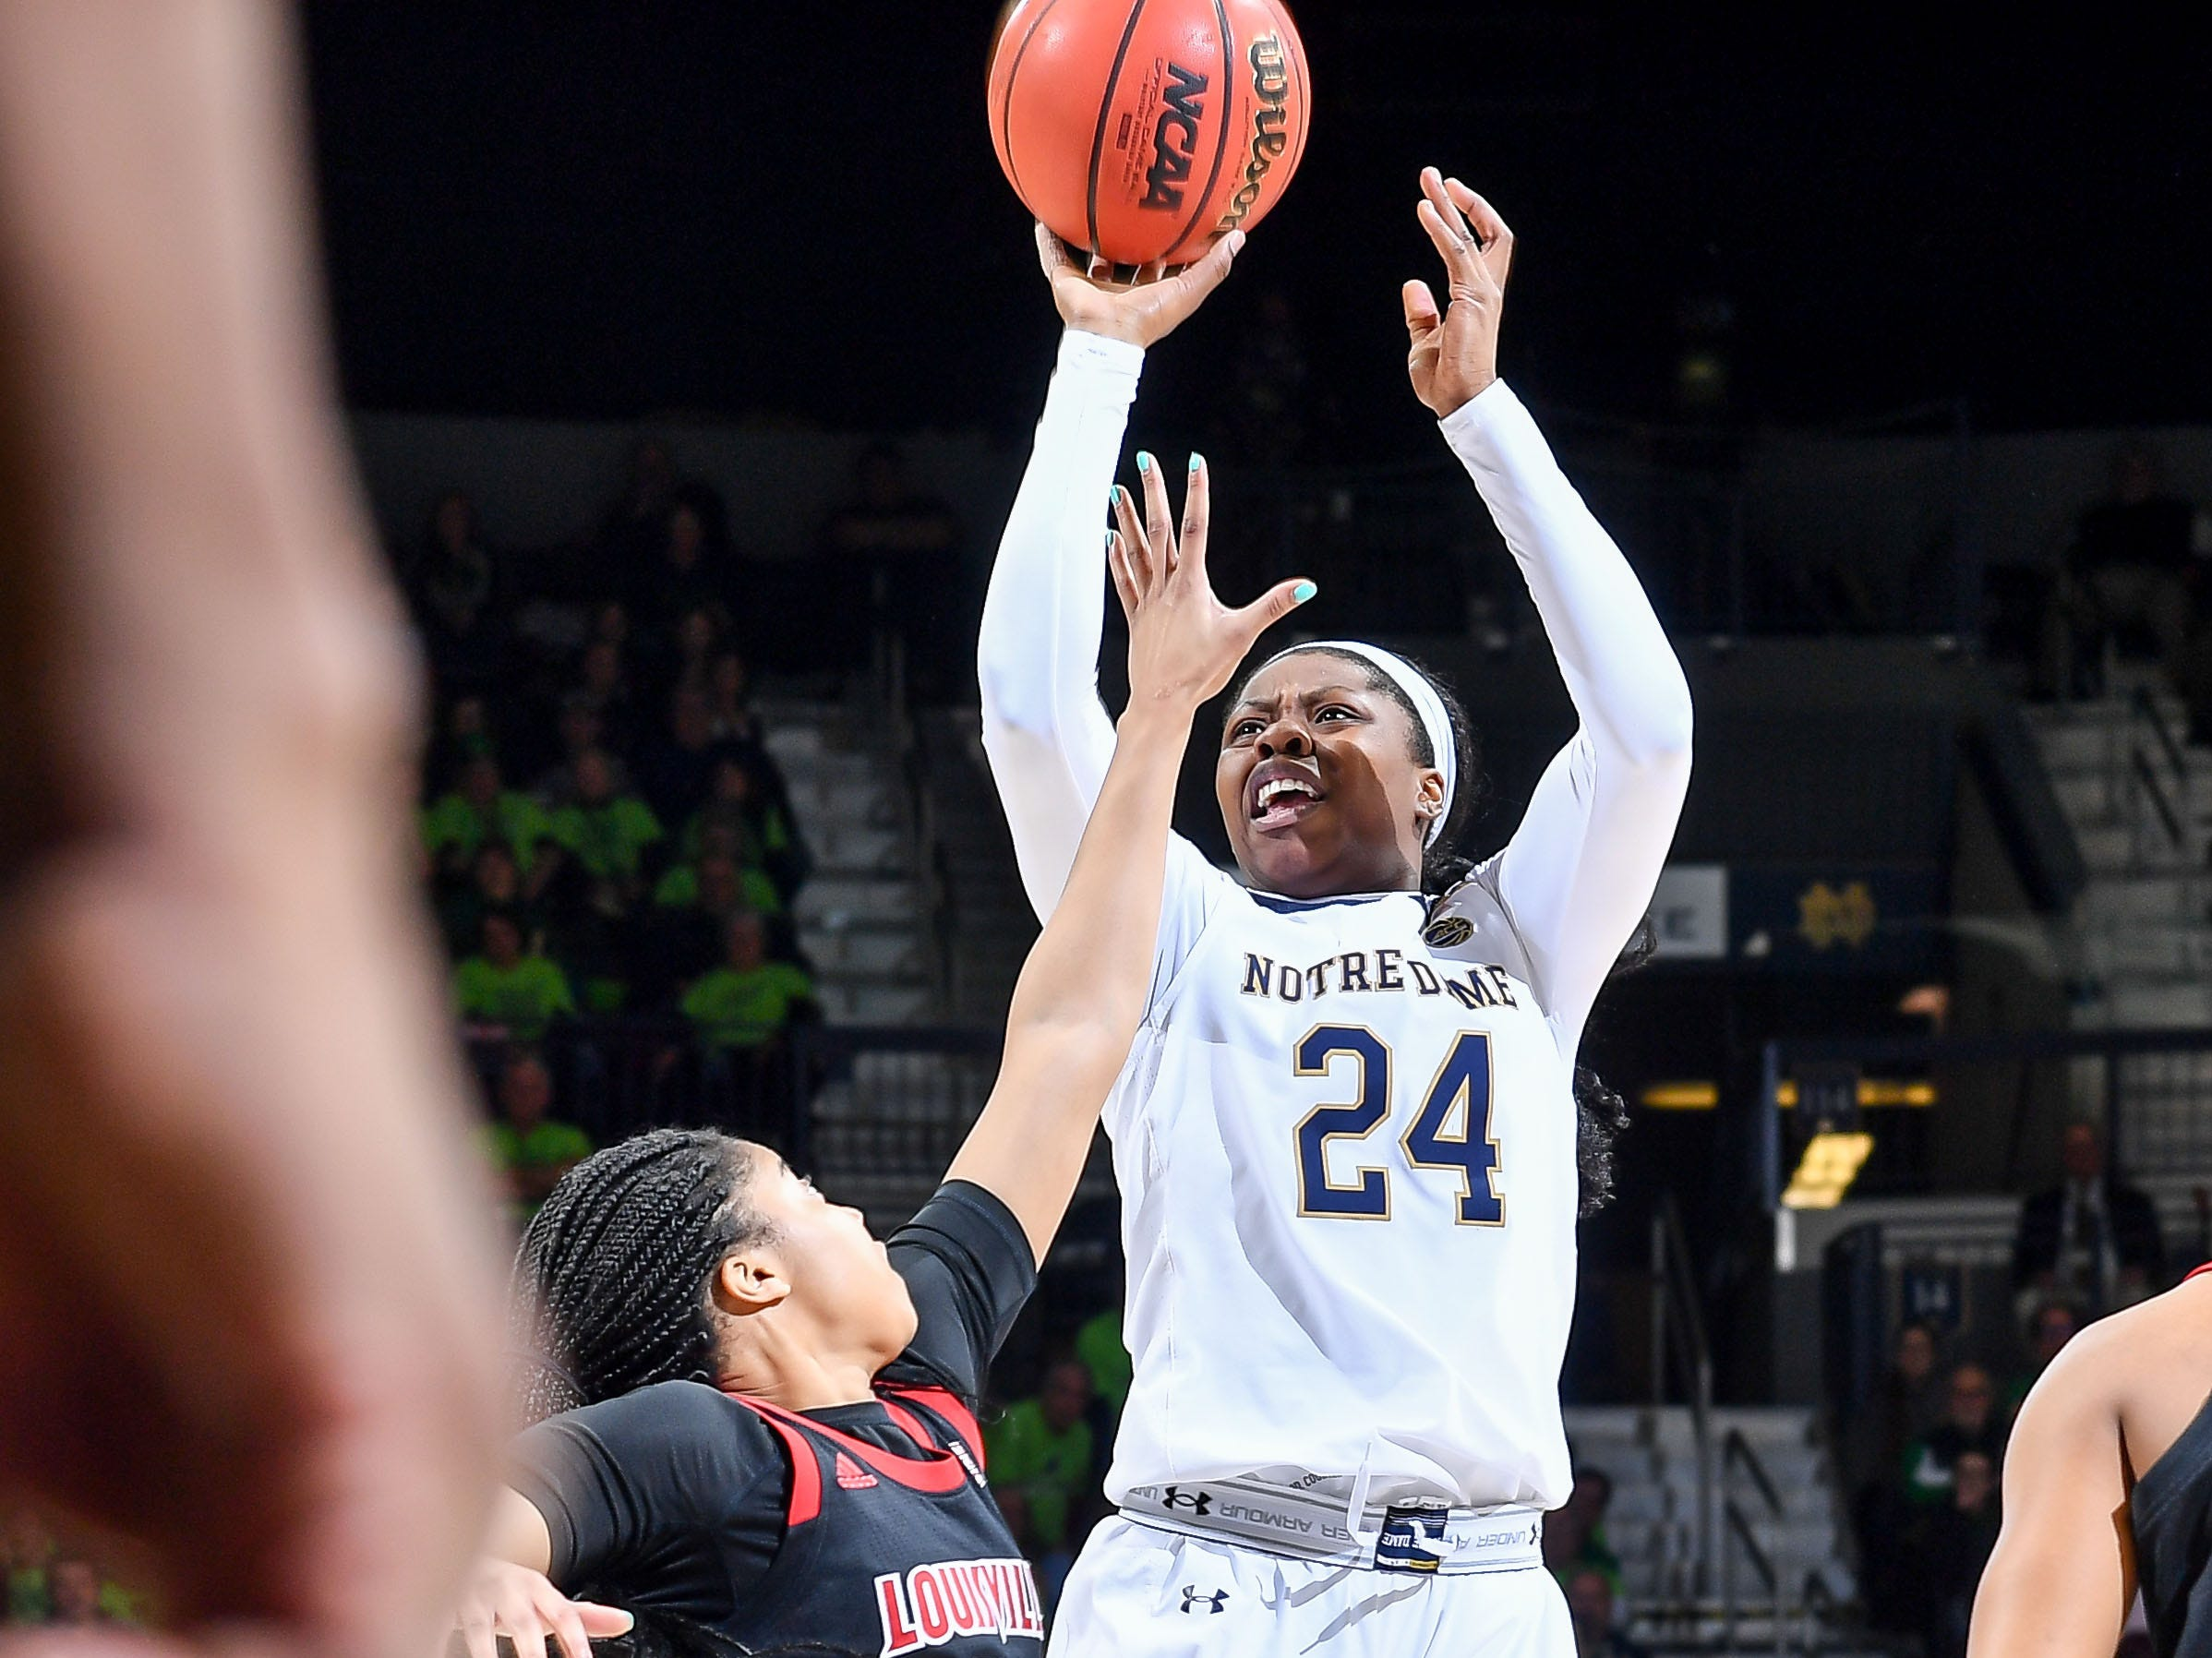 Jan 10, 2019; South Bend, IN, USA; Notre Dame Fighting Irish guard Arike Ogunbowale (24) shoots over Louisville Cardinals guard Arica Carter (11) in the second half at the Purcell Pavilion. Mandatory Credit: Matt Cashore-USA TODAY Sports